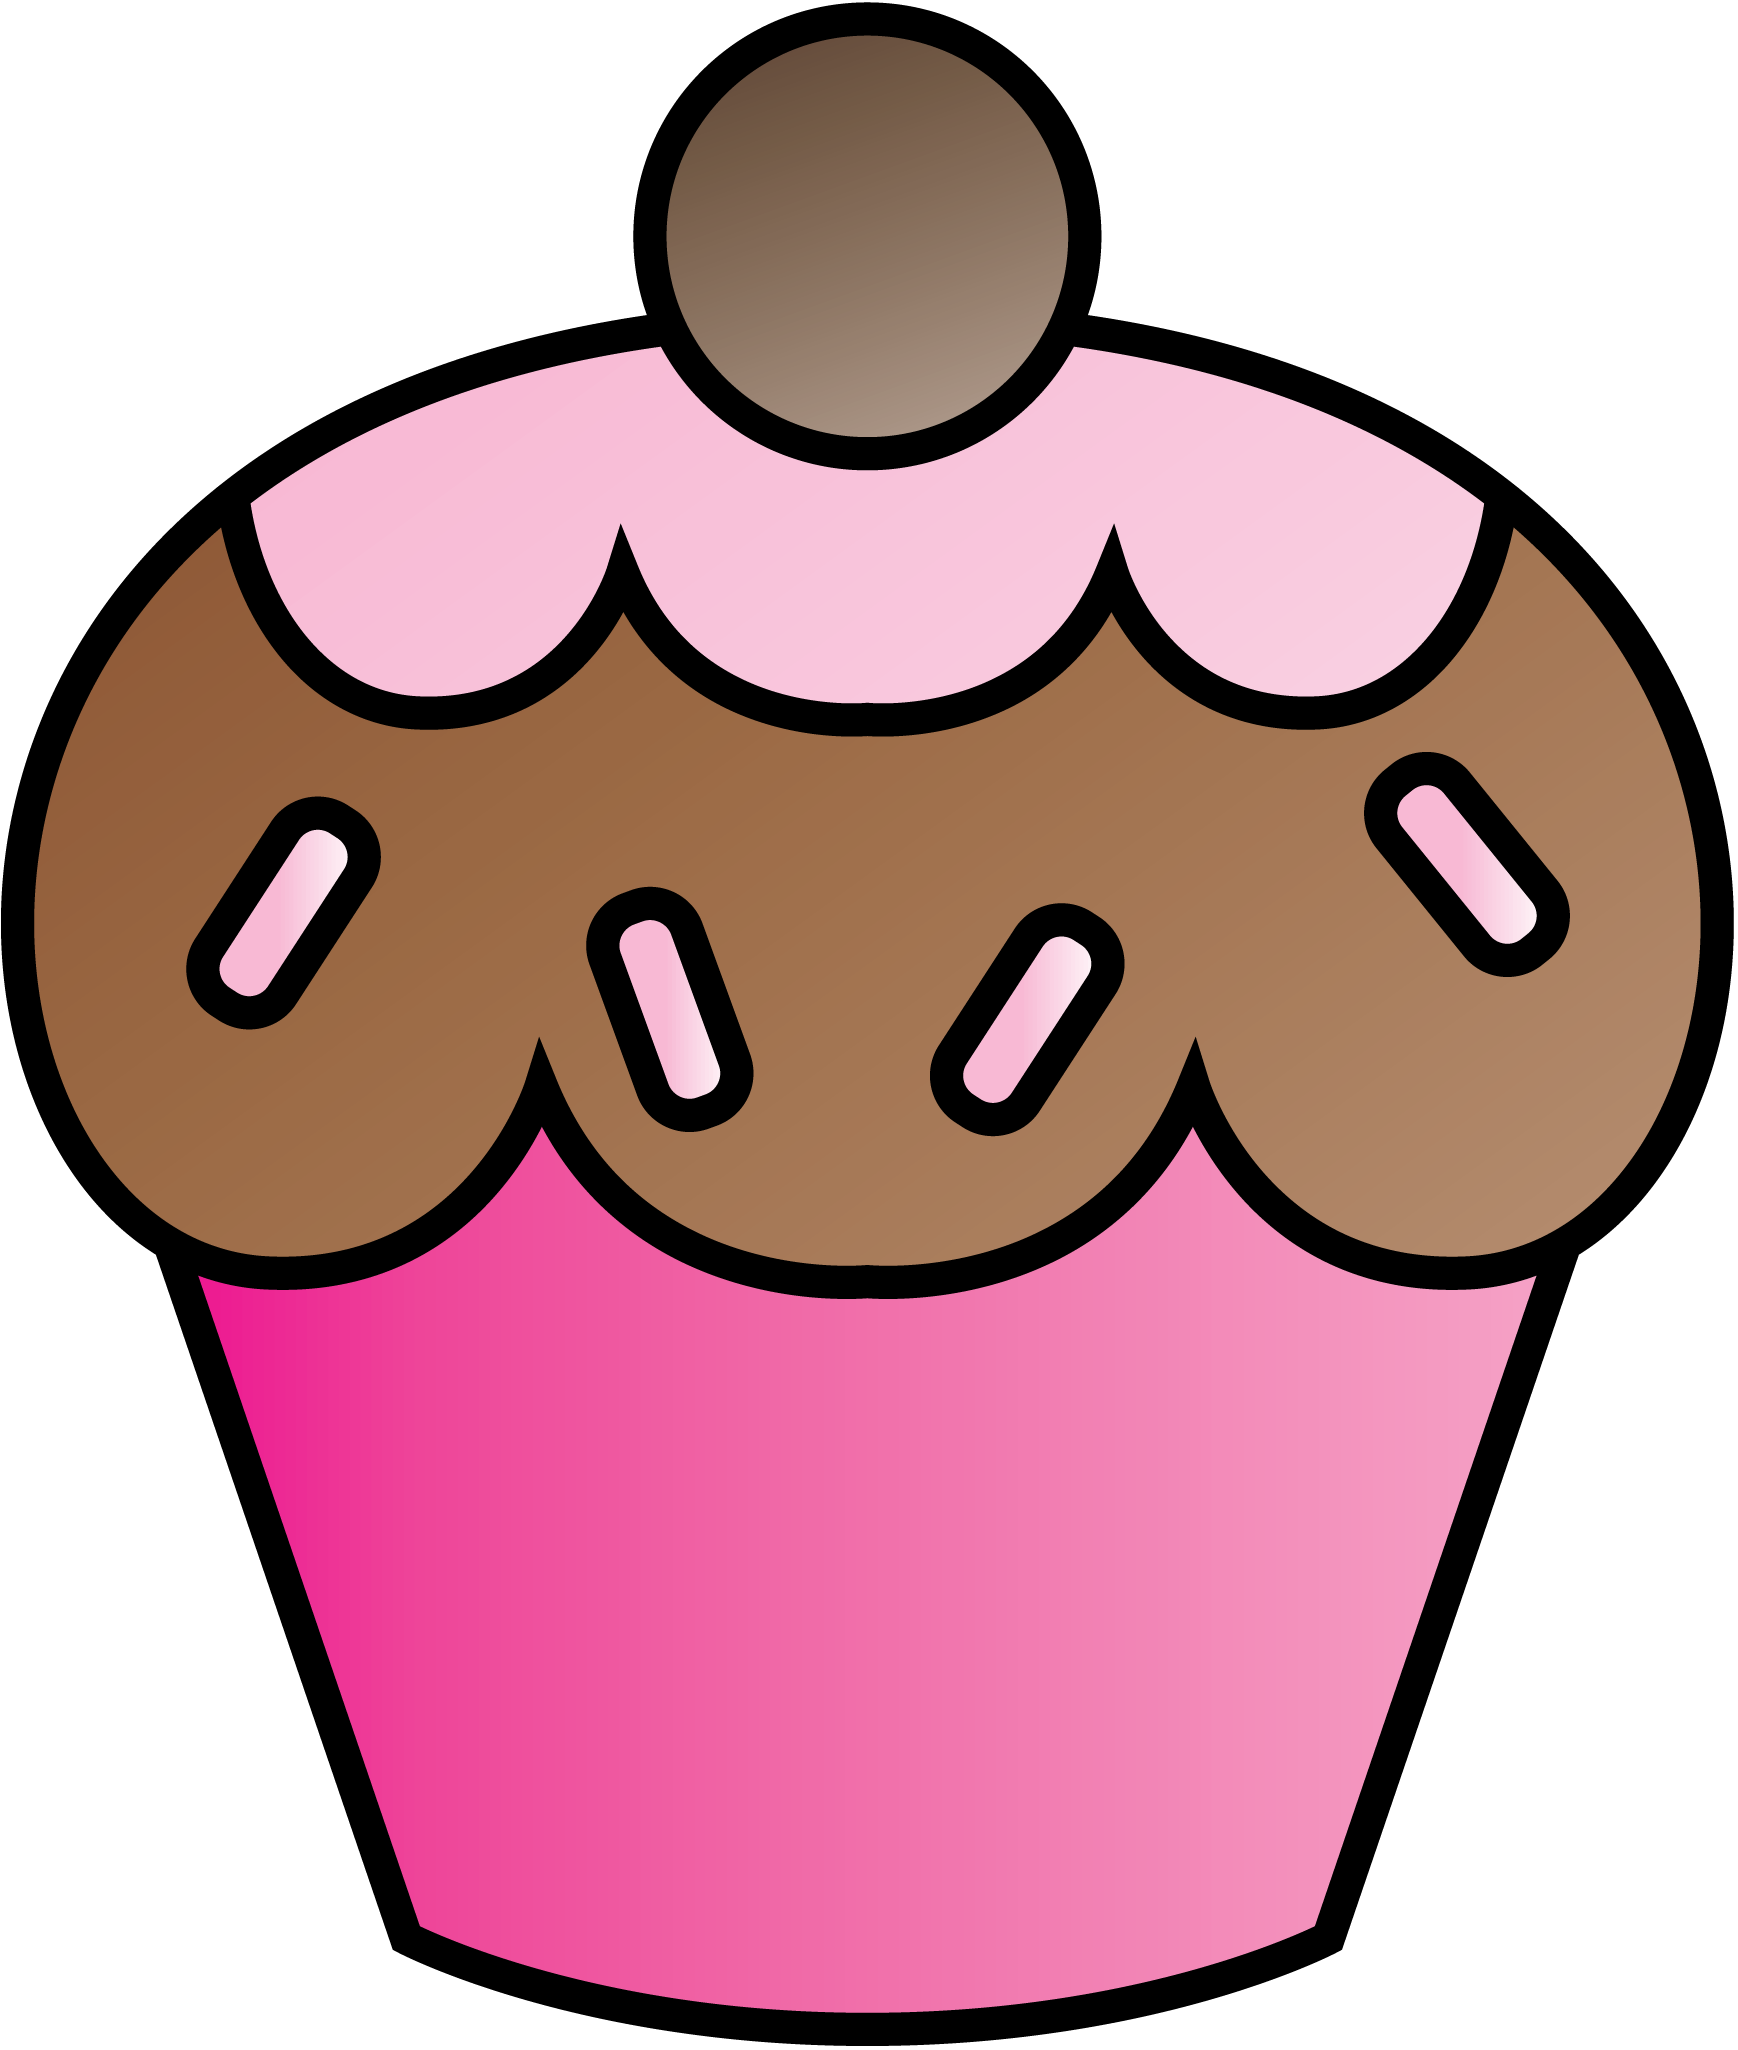 Cupcake clipart free download images 5 2